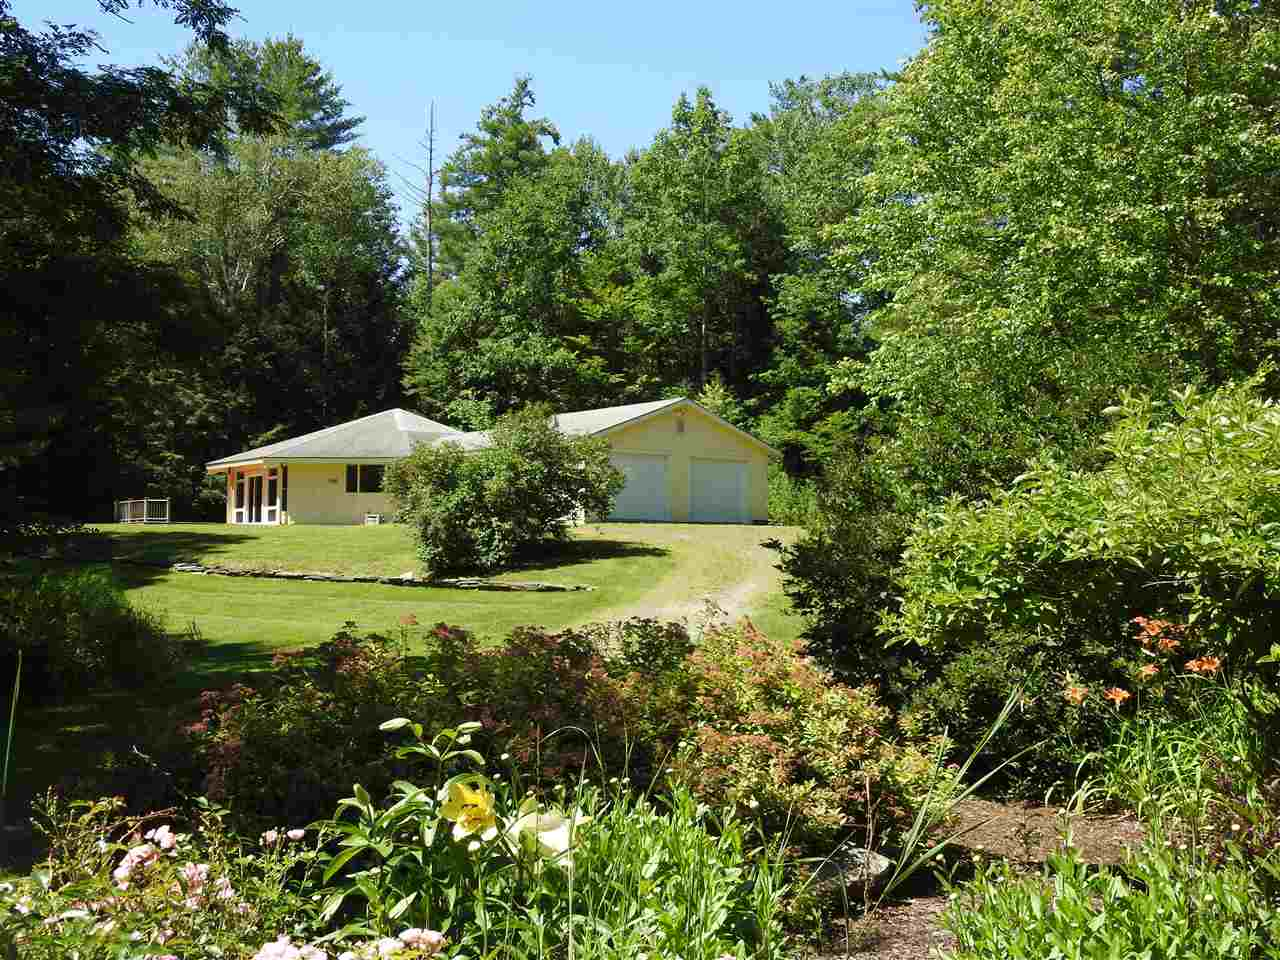 Property for sale at 2130 Vermont 30S Route, Poultney,  VT 05764